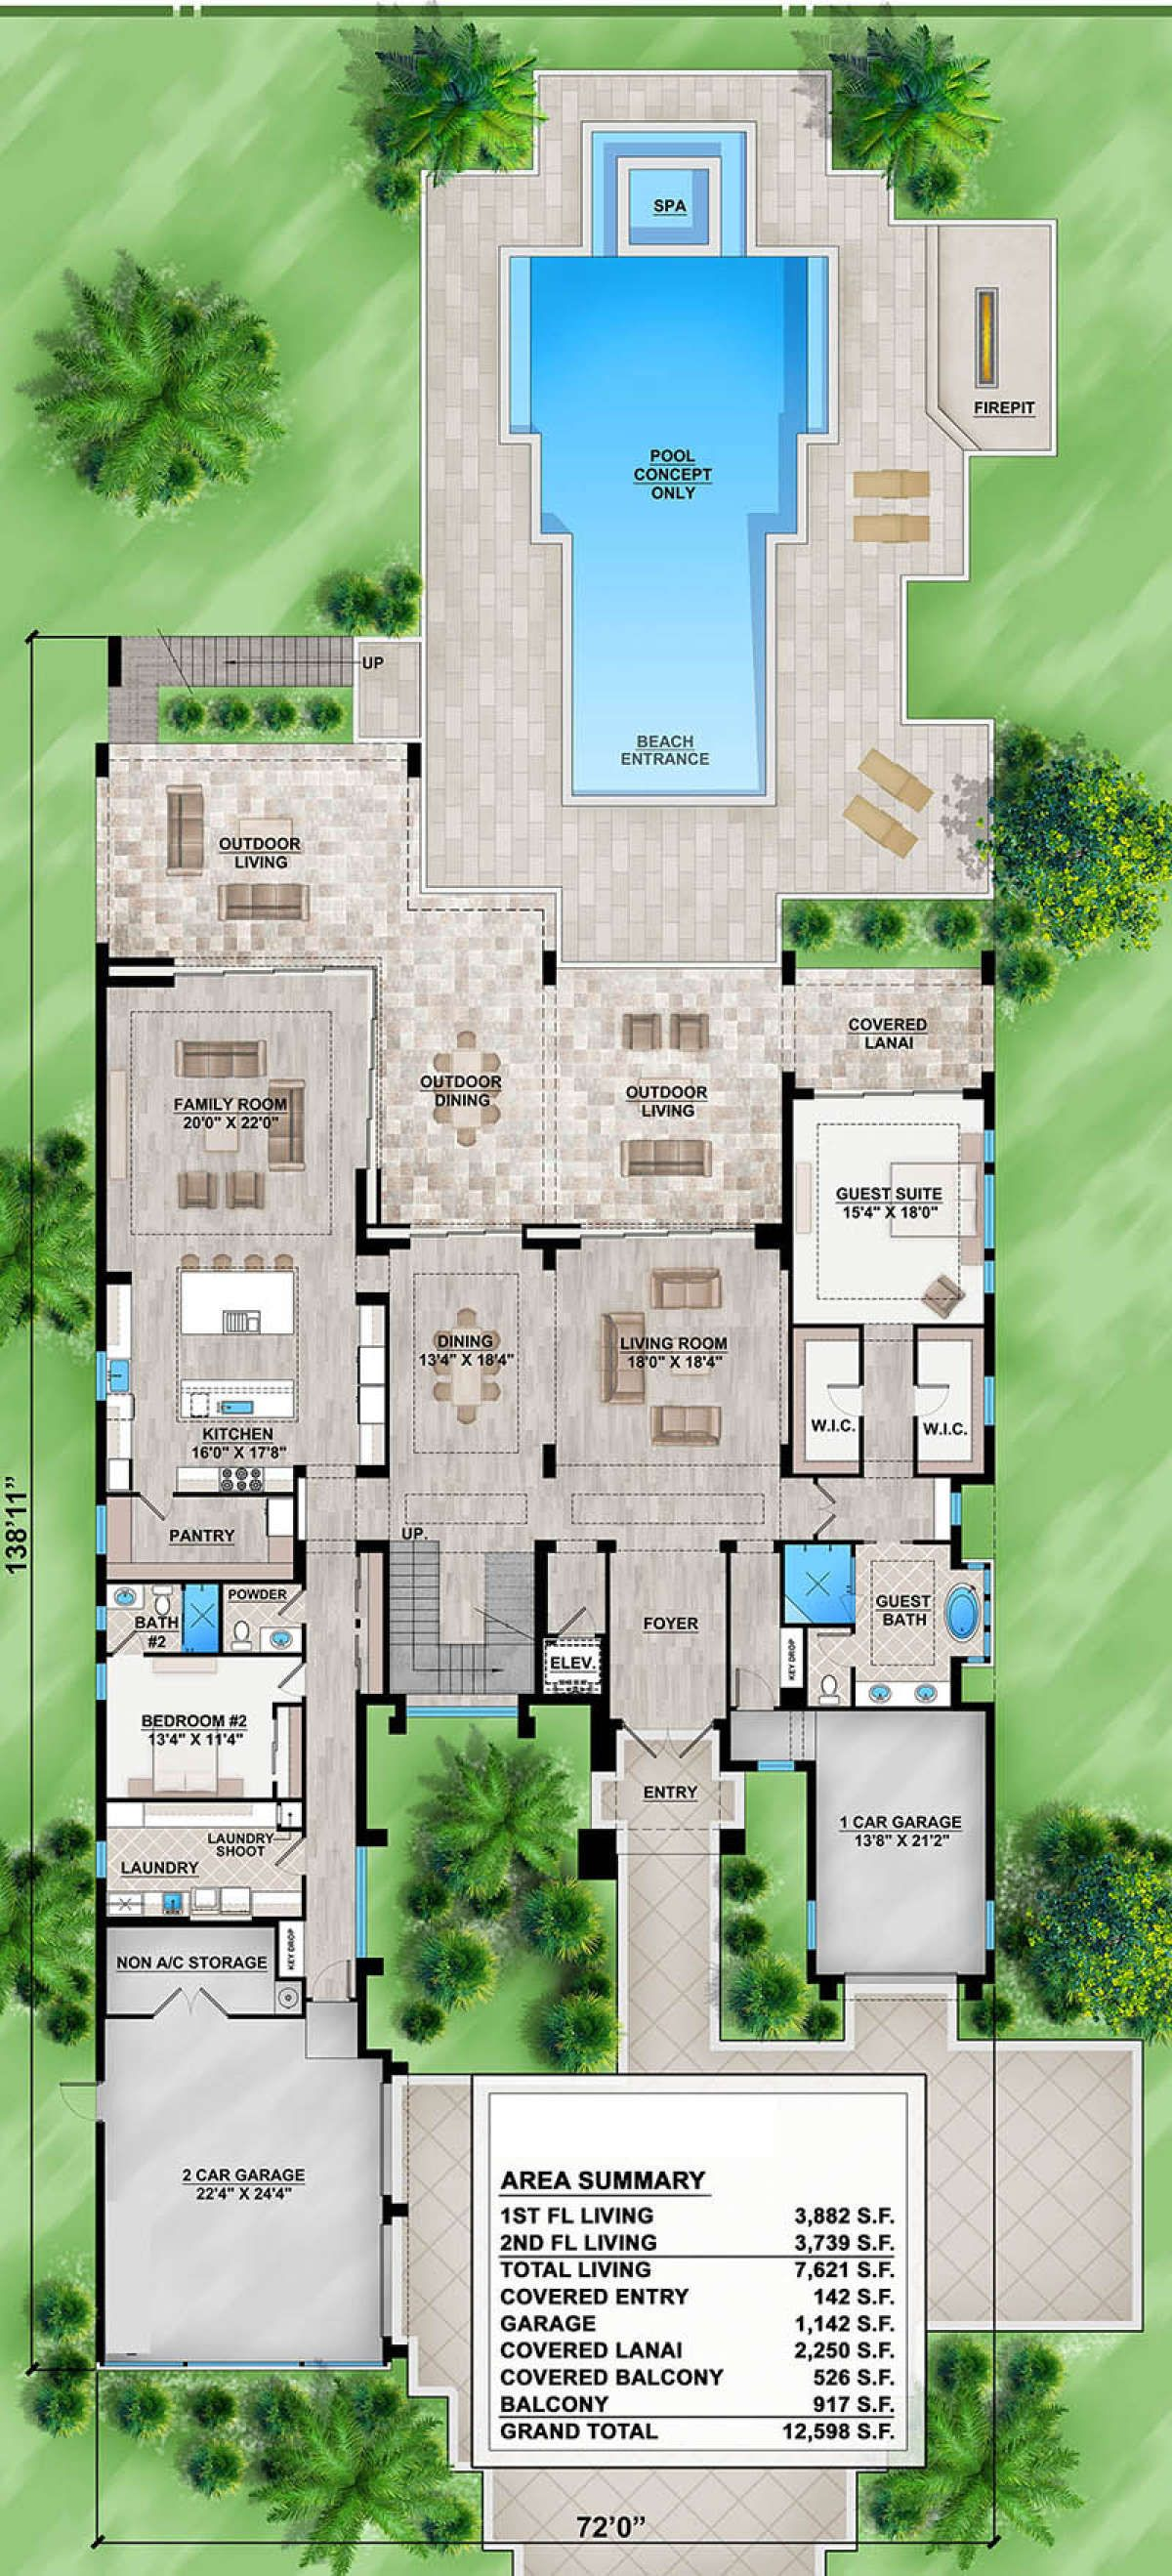 House Plan 207 00051 Luxury Plan 7 621 Square Feet 5 Bedrooms 6 Bathrooms In 2020 Contemporary House Plans New House Plans House Plans One Story